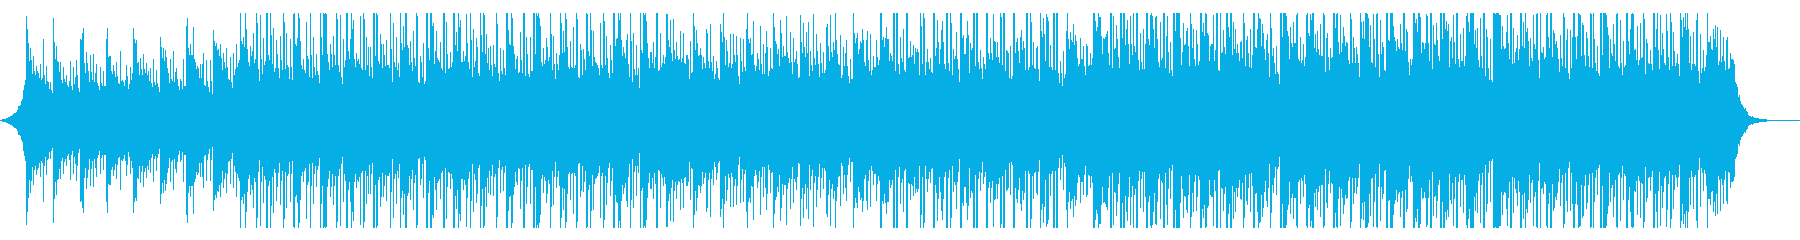 Future Technology's reproduced waveform